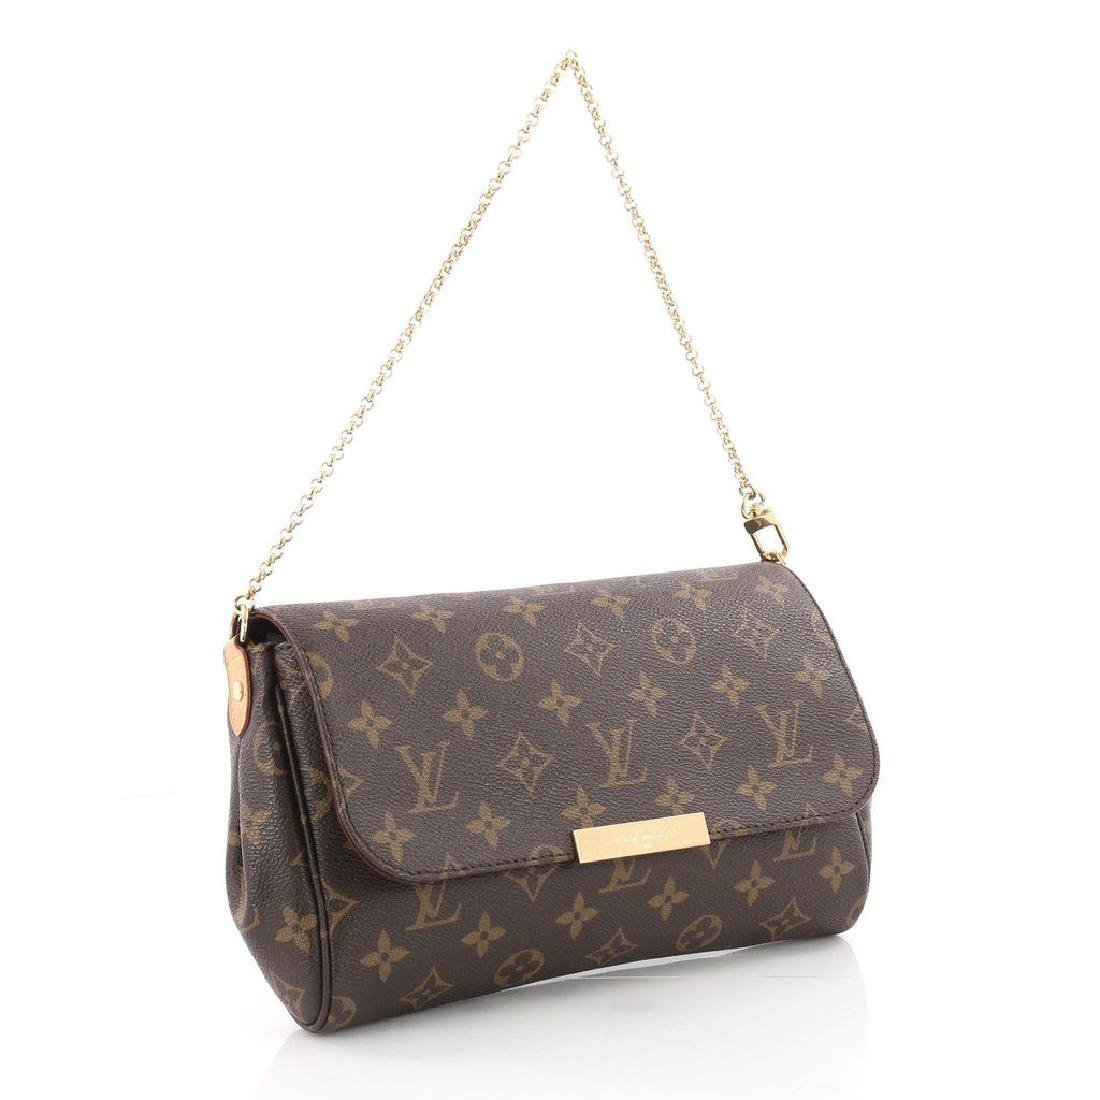 Authentic Louis Vuitton Favorite MM Crossbody Bag with - 2